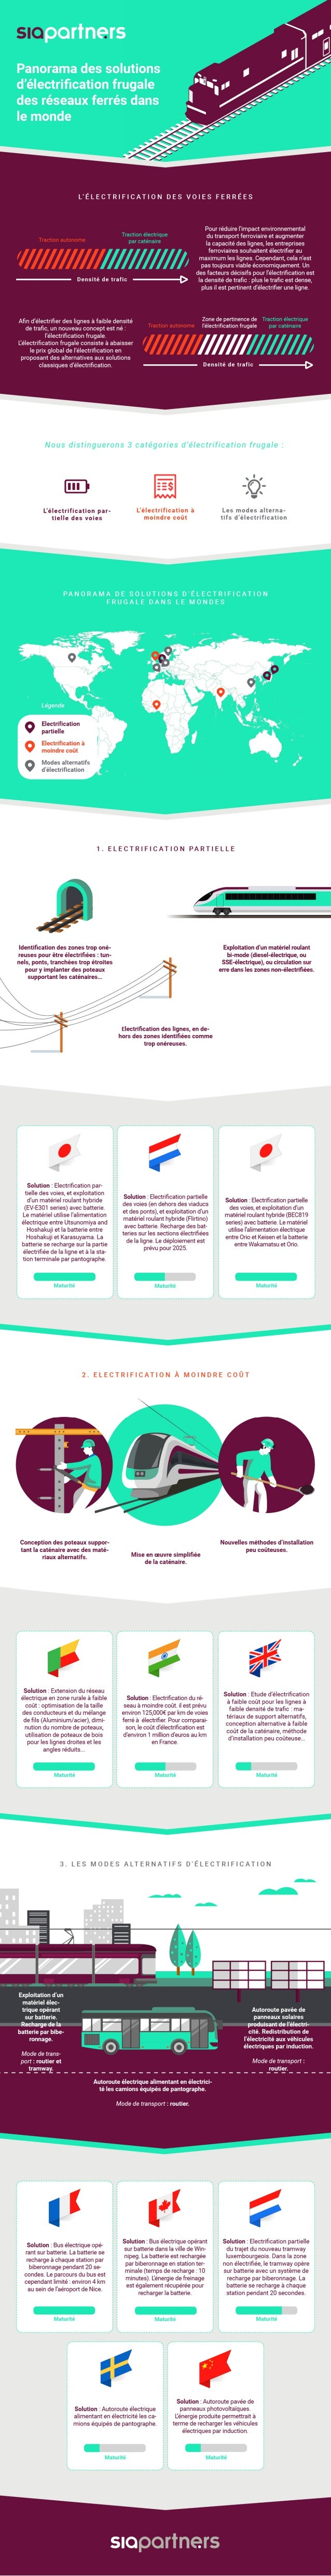 Infographie Sia Partners - Electrification frugale